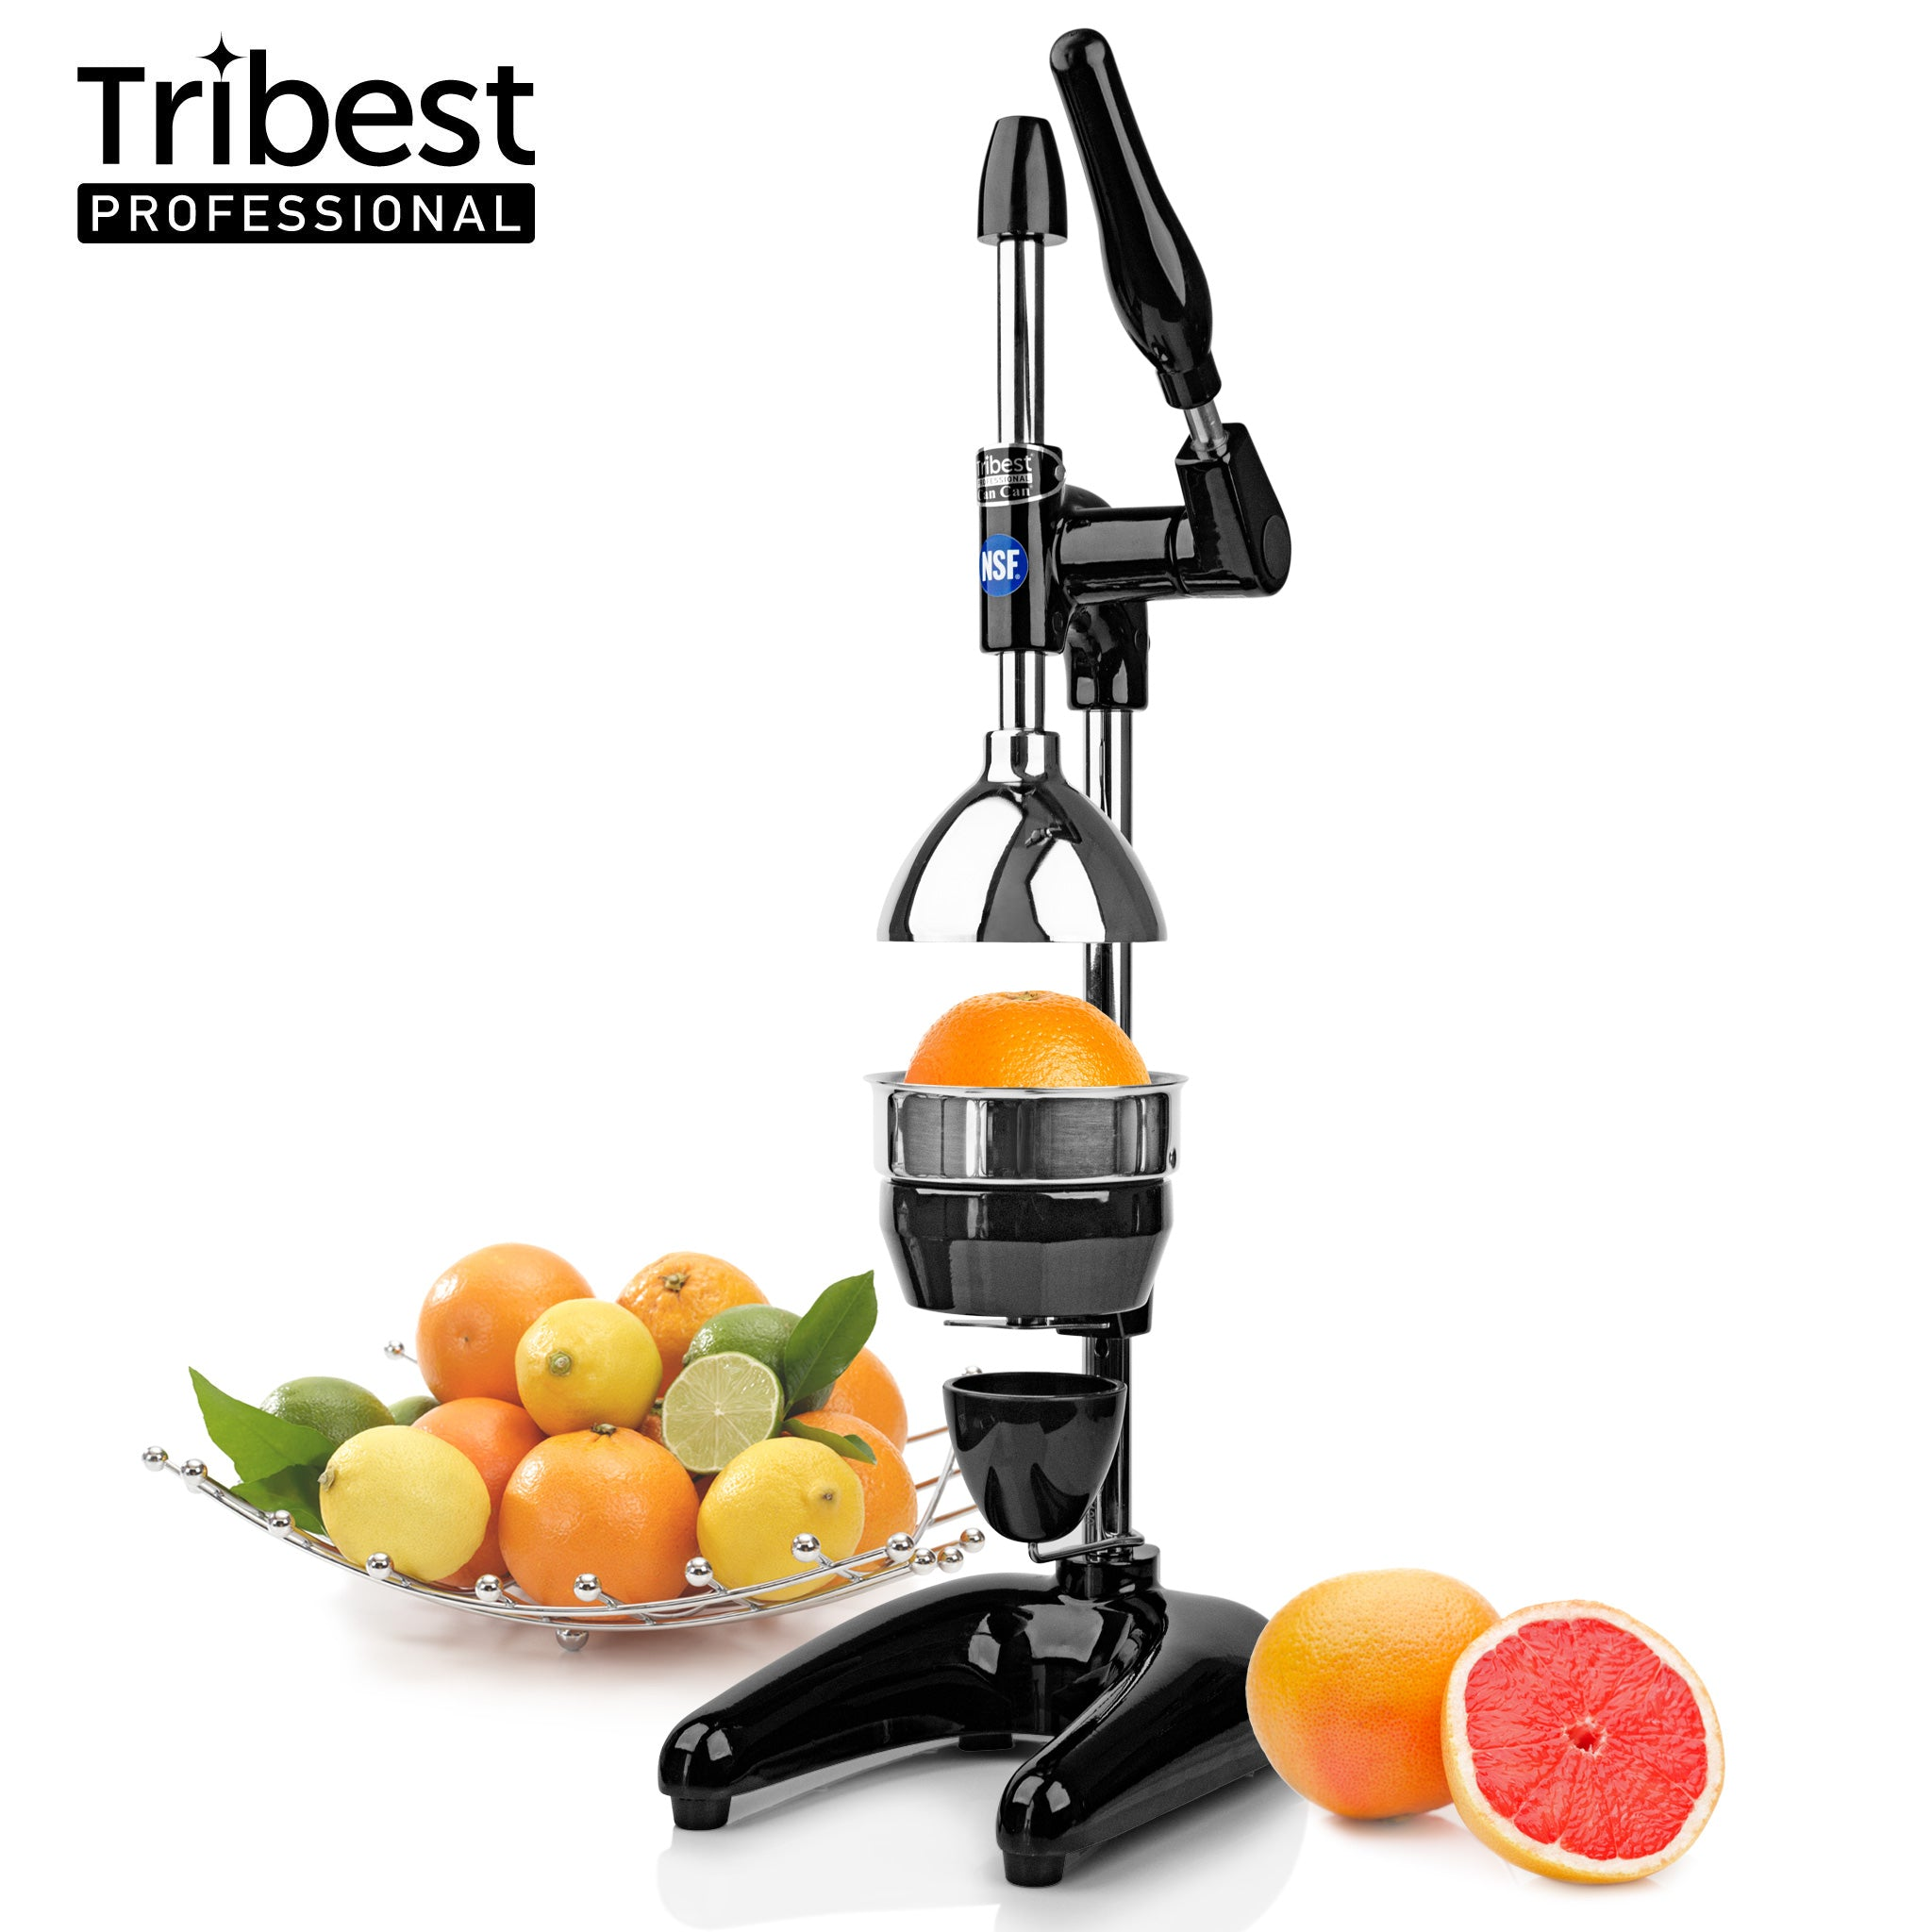 Tribest Professional Cancan Manual Juice Press MJP-100 in Black